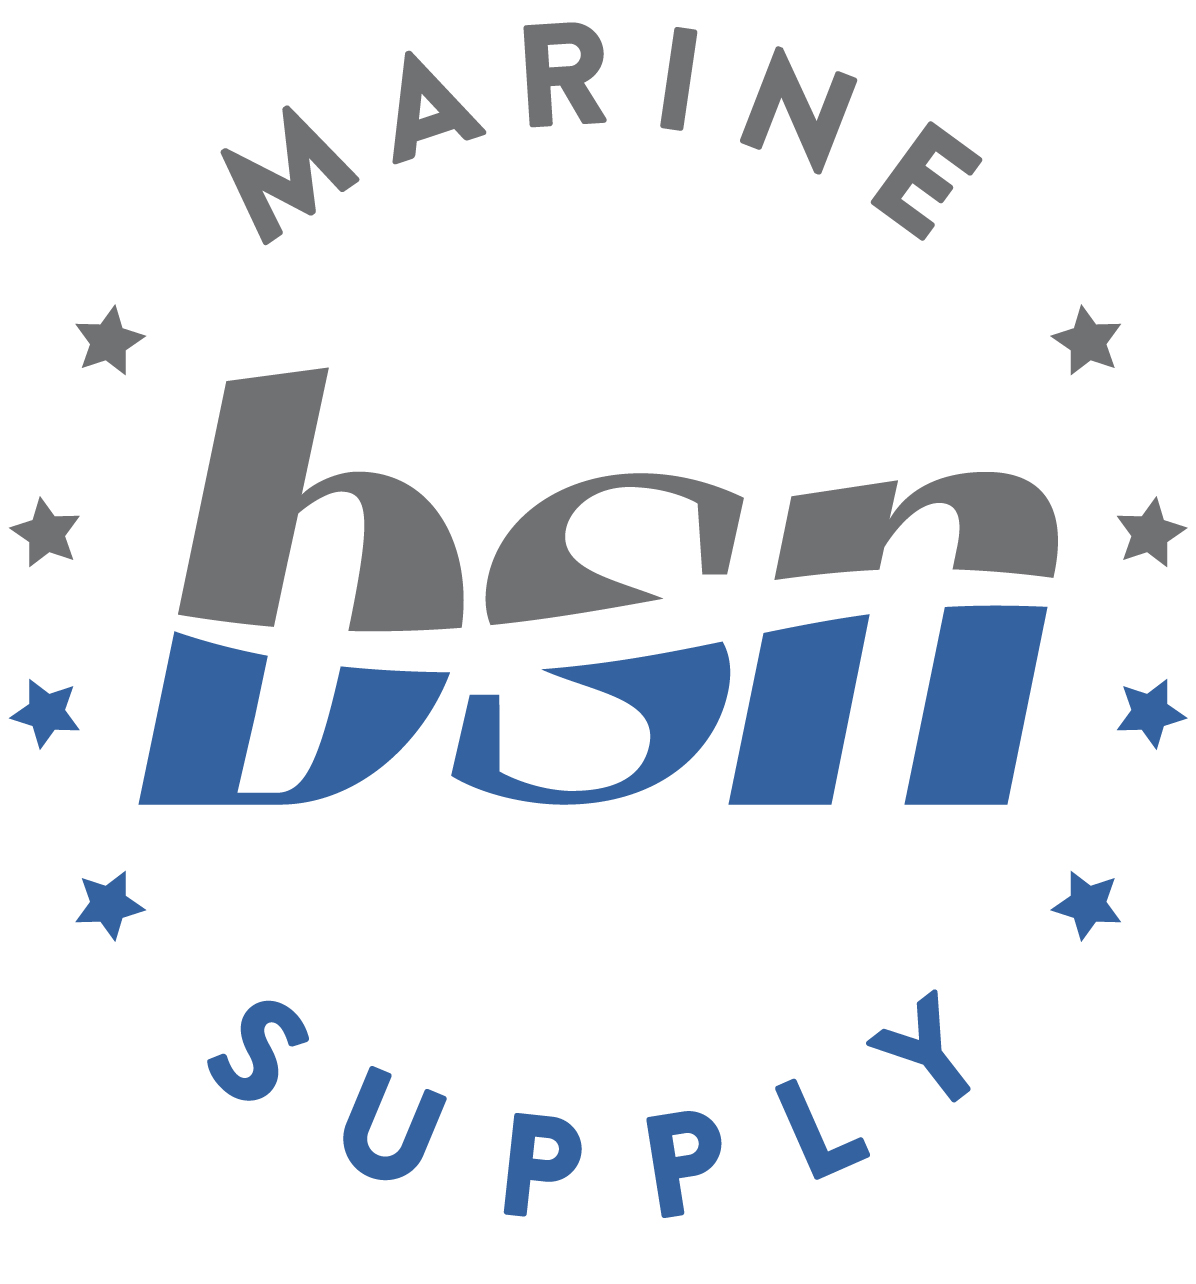 Bsn Marine Supply / Bsn Yachts